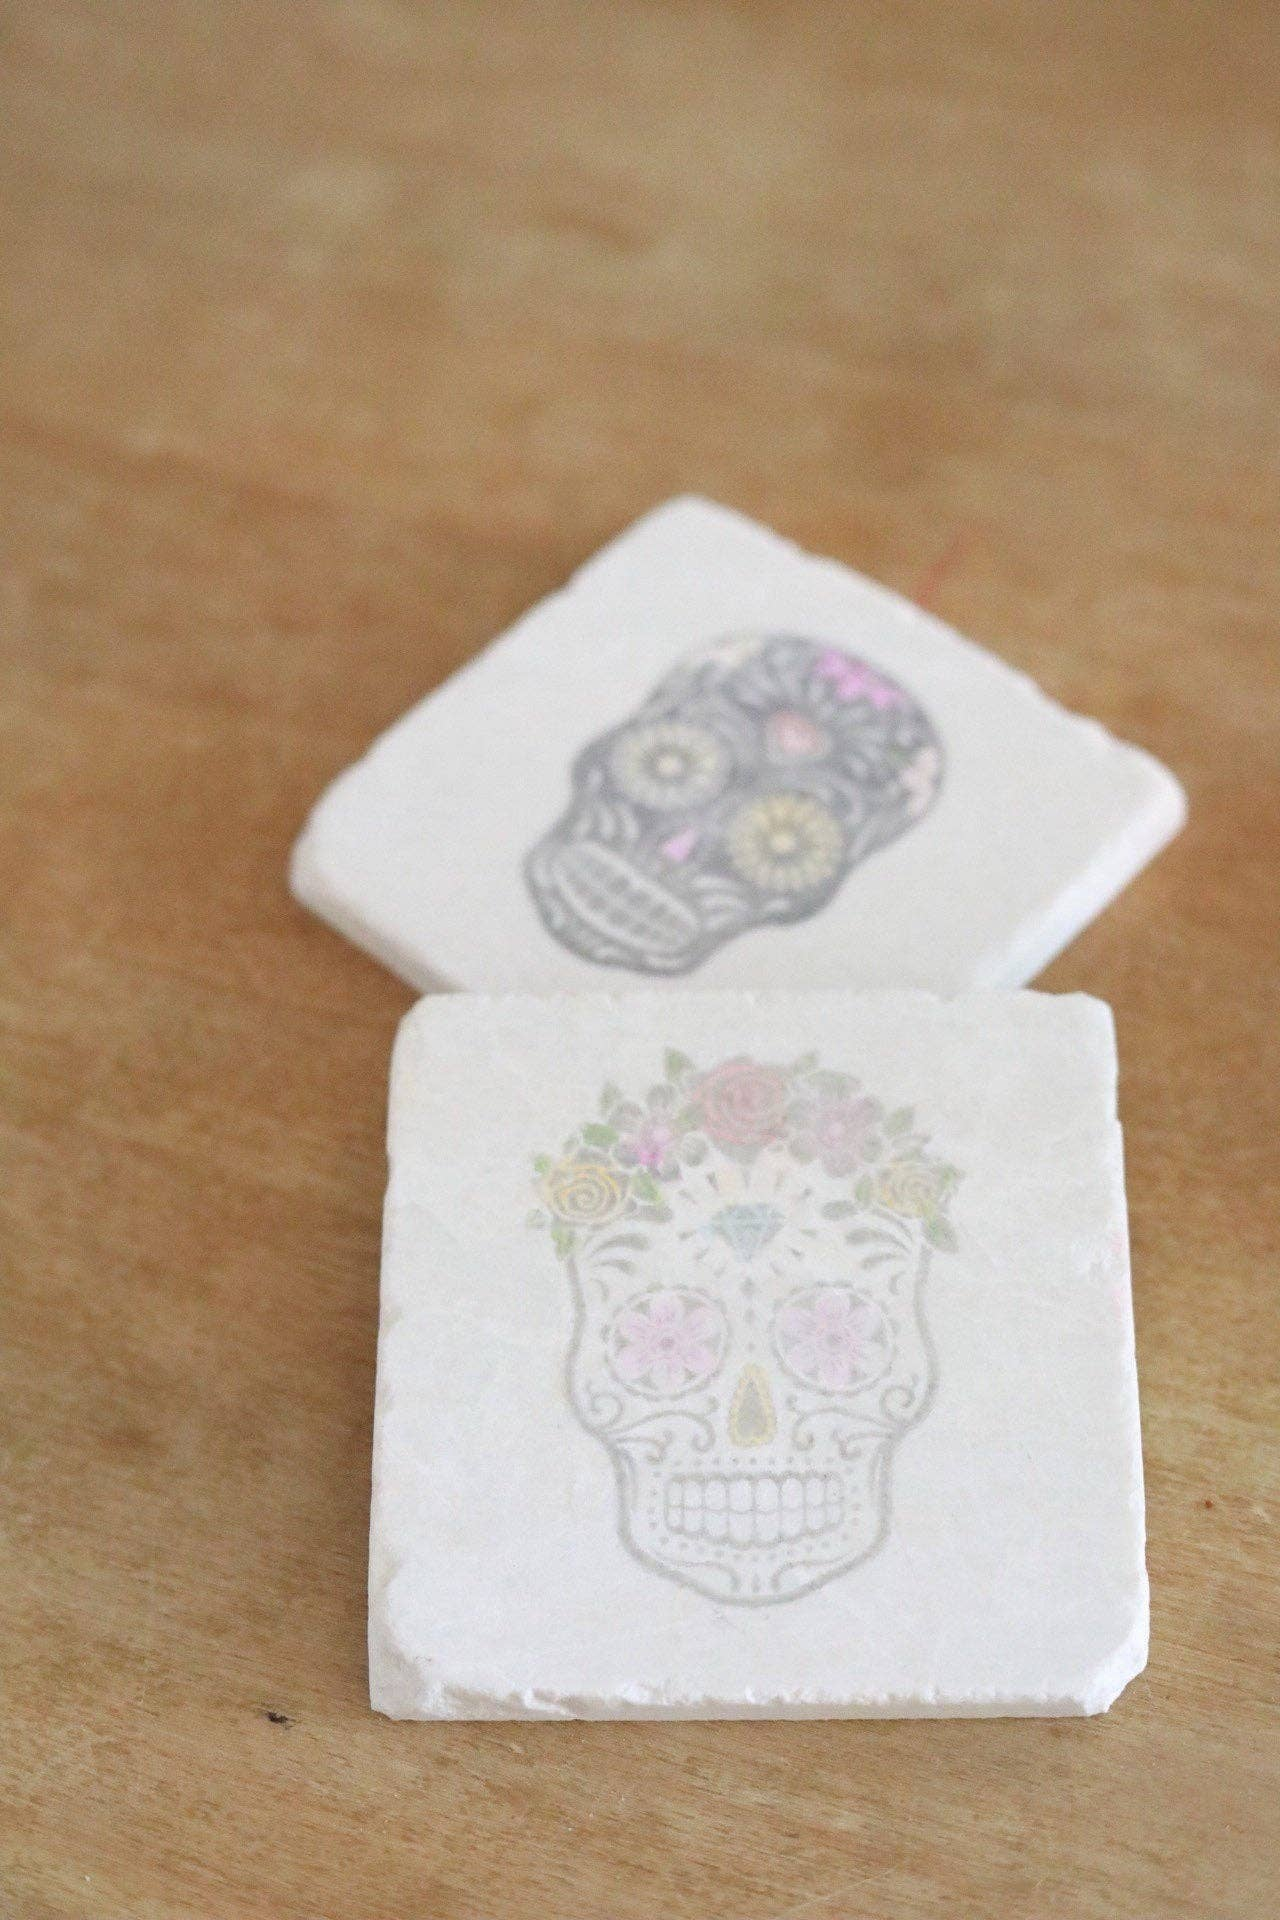 Sugar Skull Painted Marble Coaster